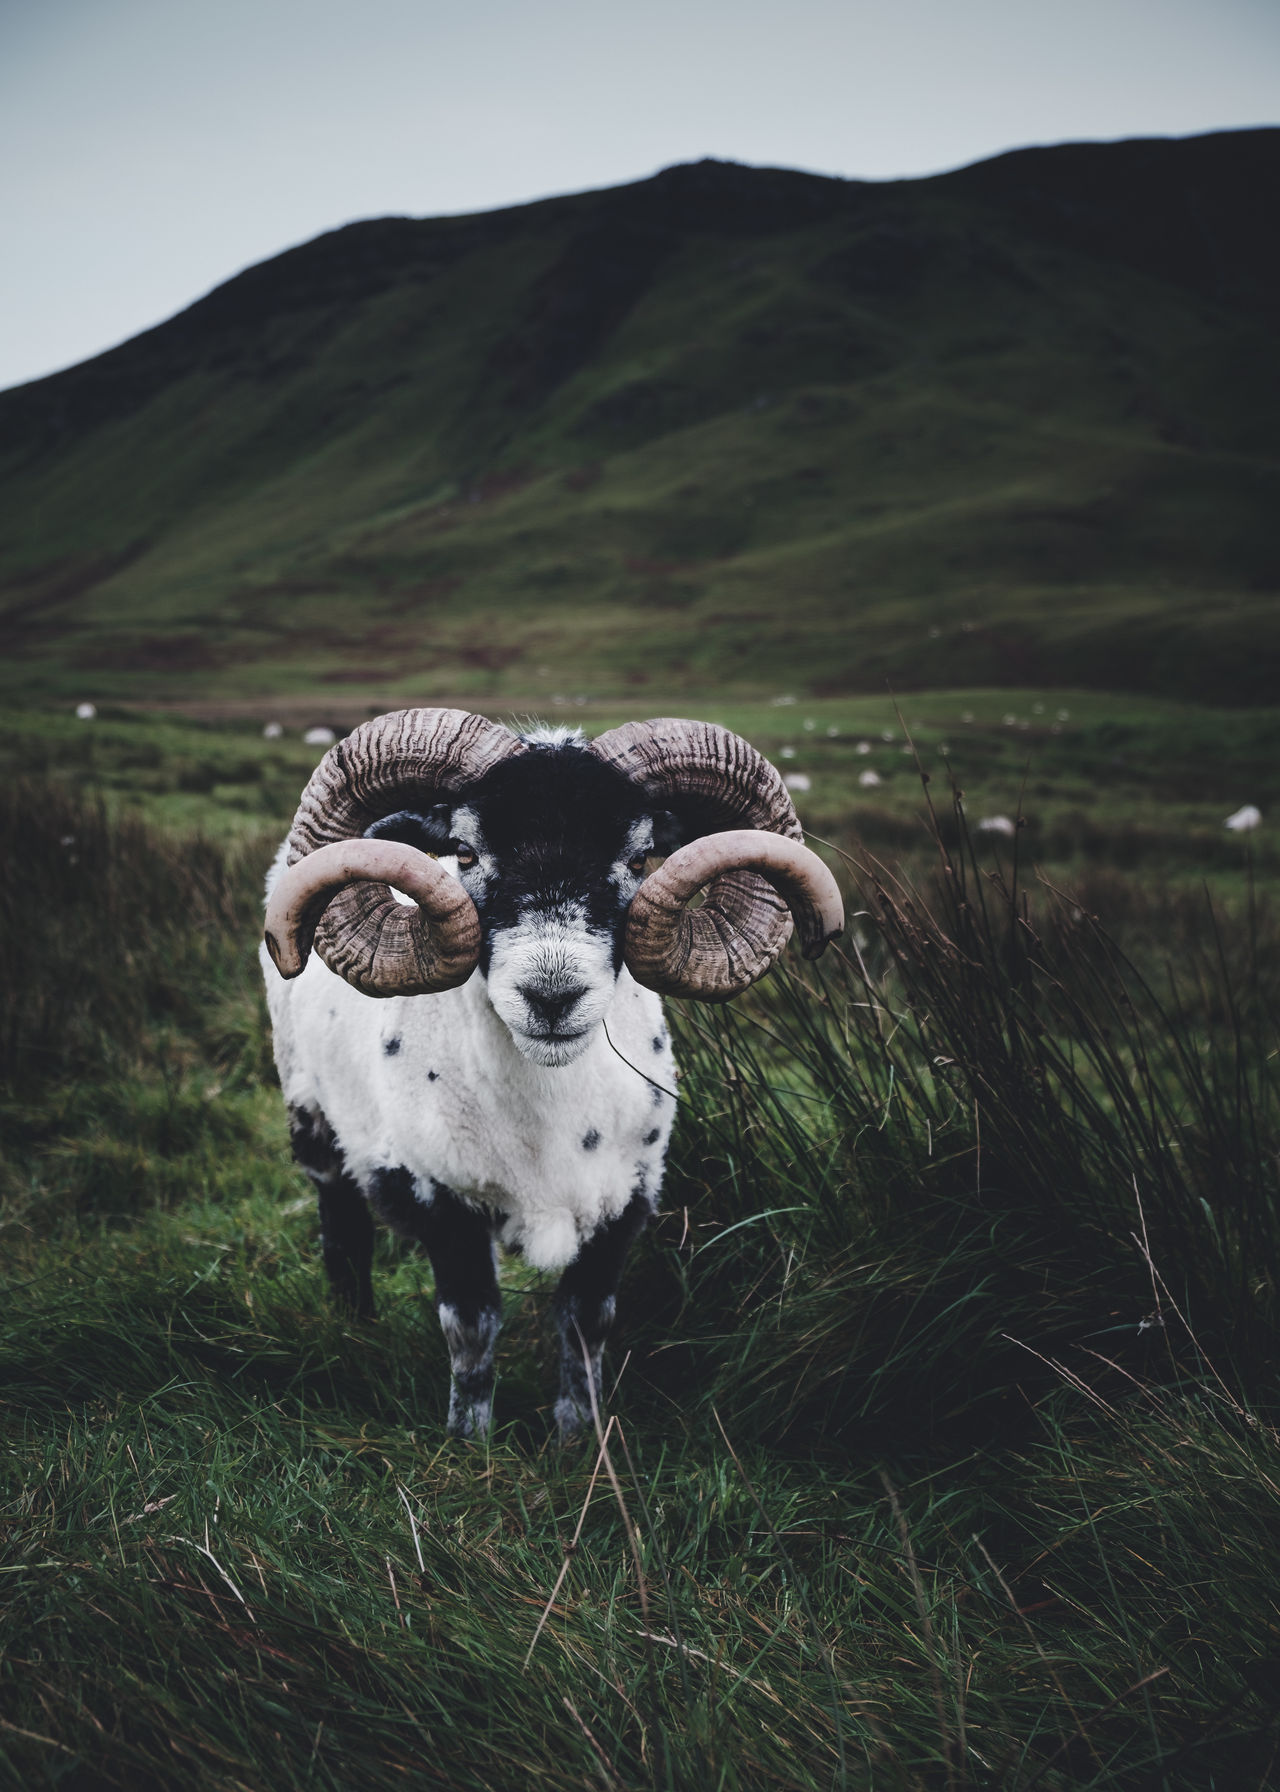 Gentle guy. Okay - his horns could be dangerous but he was very kind to me. Location: Isle Of Skye, Scotland Equipment: Fujifilm X-T1 + XF18-55 www.instagram.com/nils_leithold Agriculture Animal Themes Animals In The Wild Day Eye Face Fujifilm Goat Grass Green Horn Horned Horny ☜ Isle Of Skye Landscape Mammal Mountain Nature No People Outdoors Plant Portrait Scotland Sheep Sky